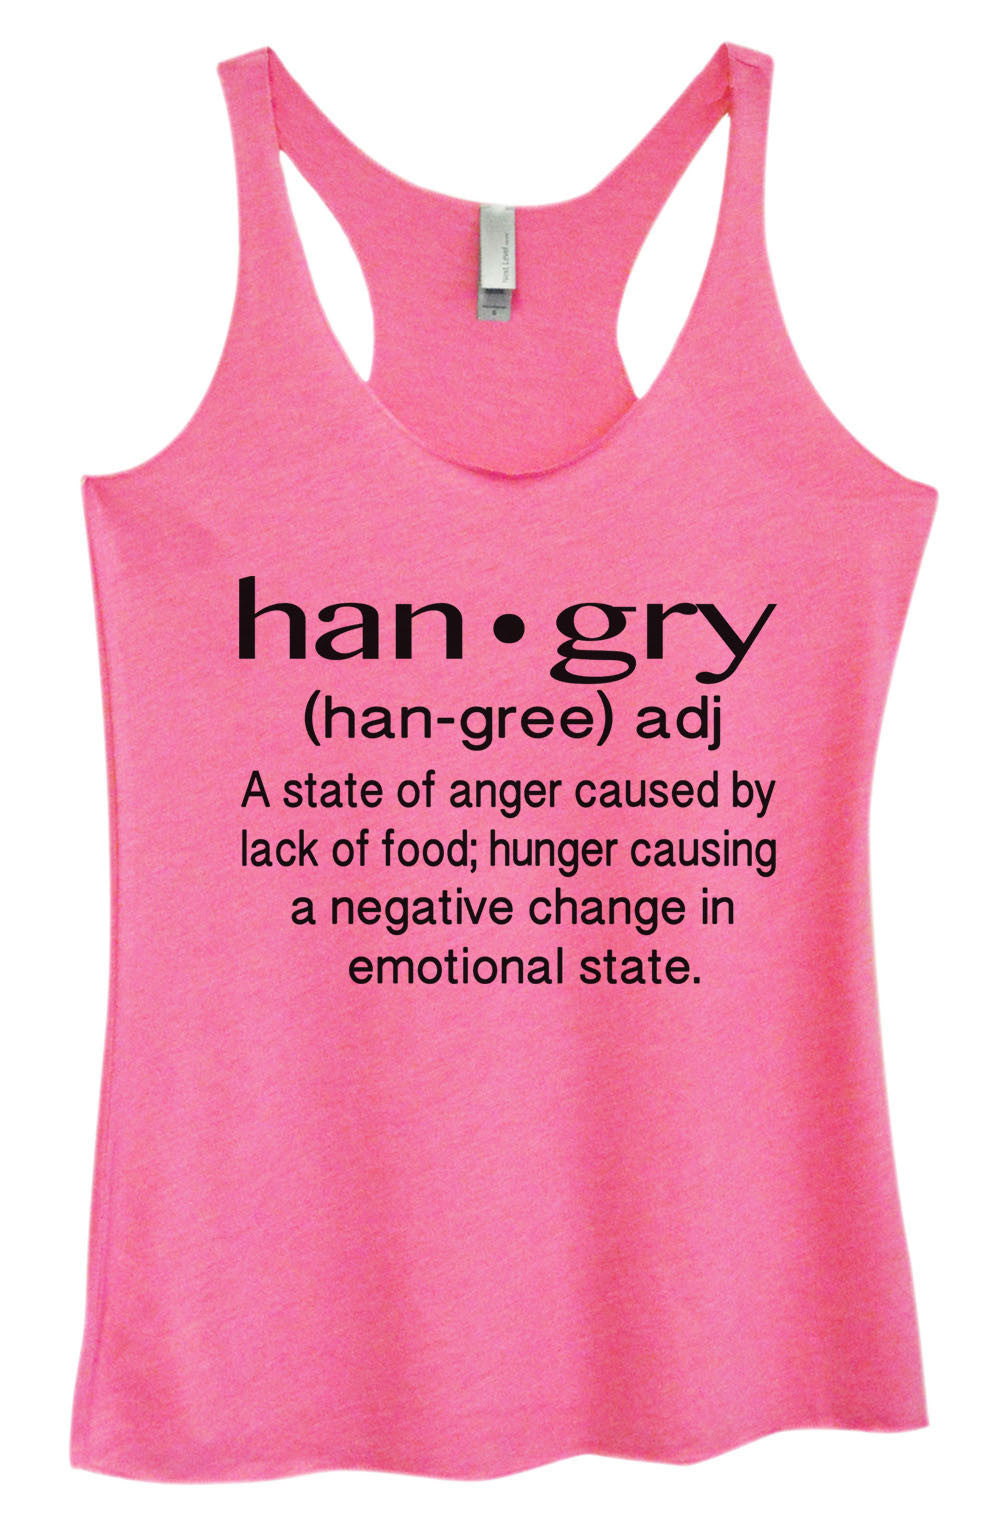 Womens Fashion Triblend Tank Top - Han.gry (Han-Gree) Adj A State Of Anger Caused By Lack Of Food; Hunger causing A Negative Change In Emotional State. - Tri-957 - Funny Shirts Tank Tops Burnouts and Triblends  - 3